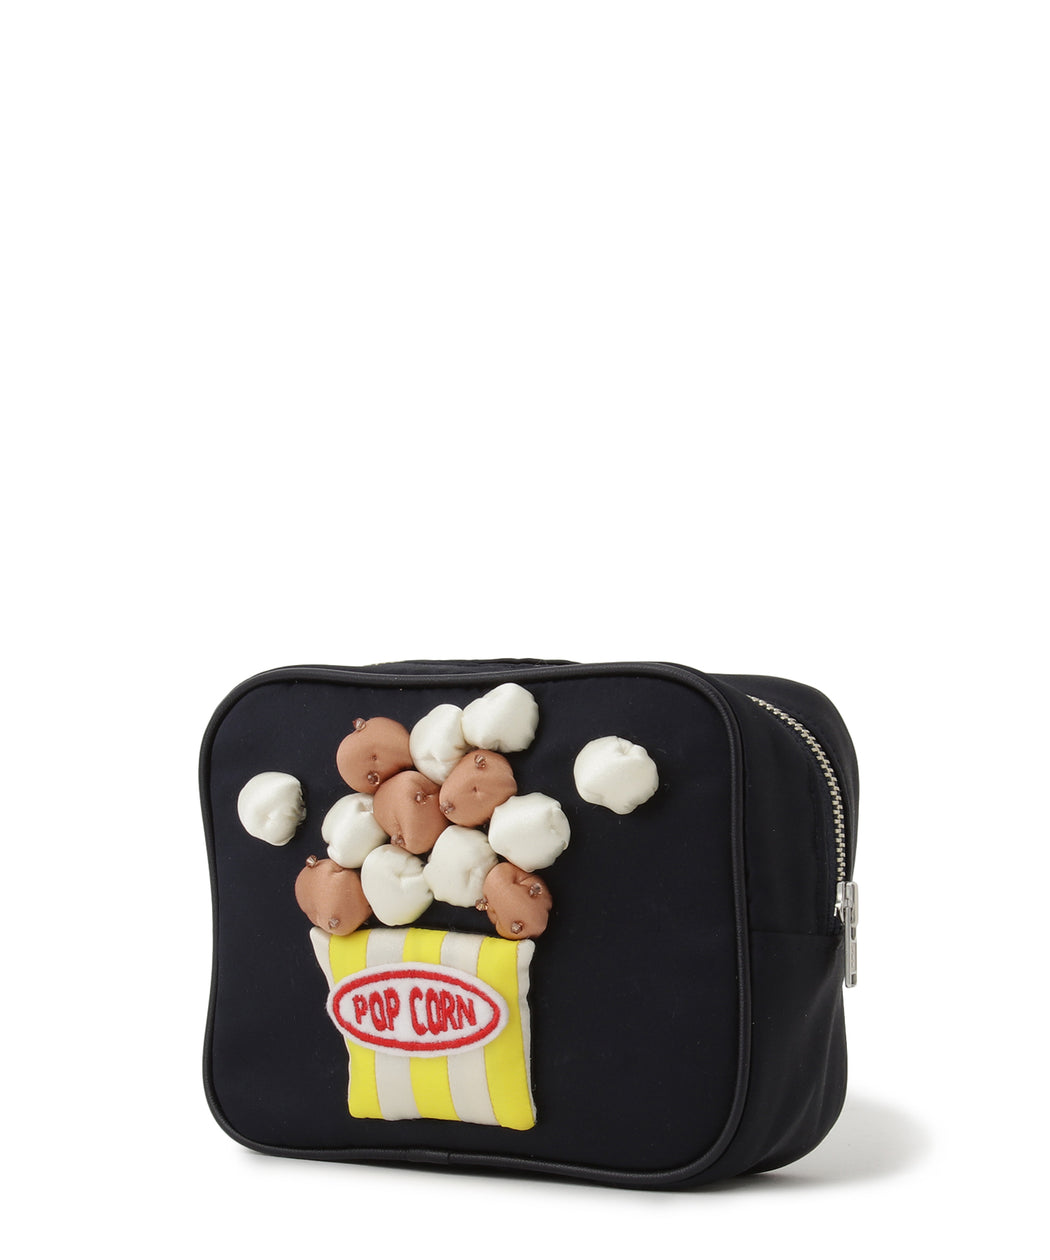 [阪急限定] Pouch with tissue case (popcorn)